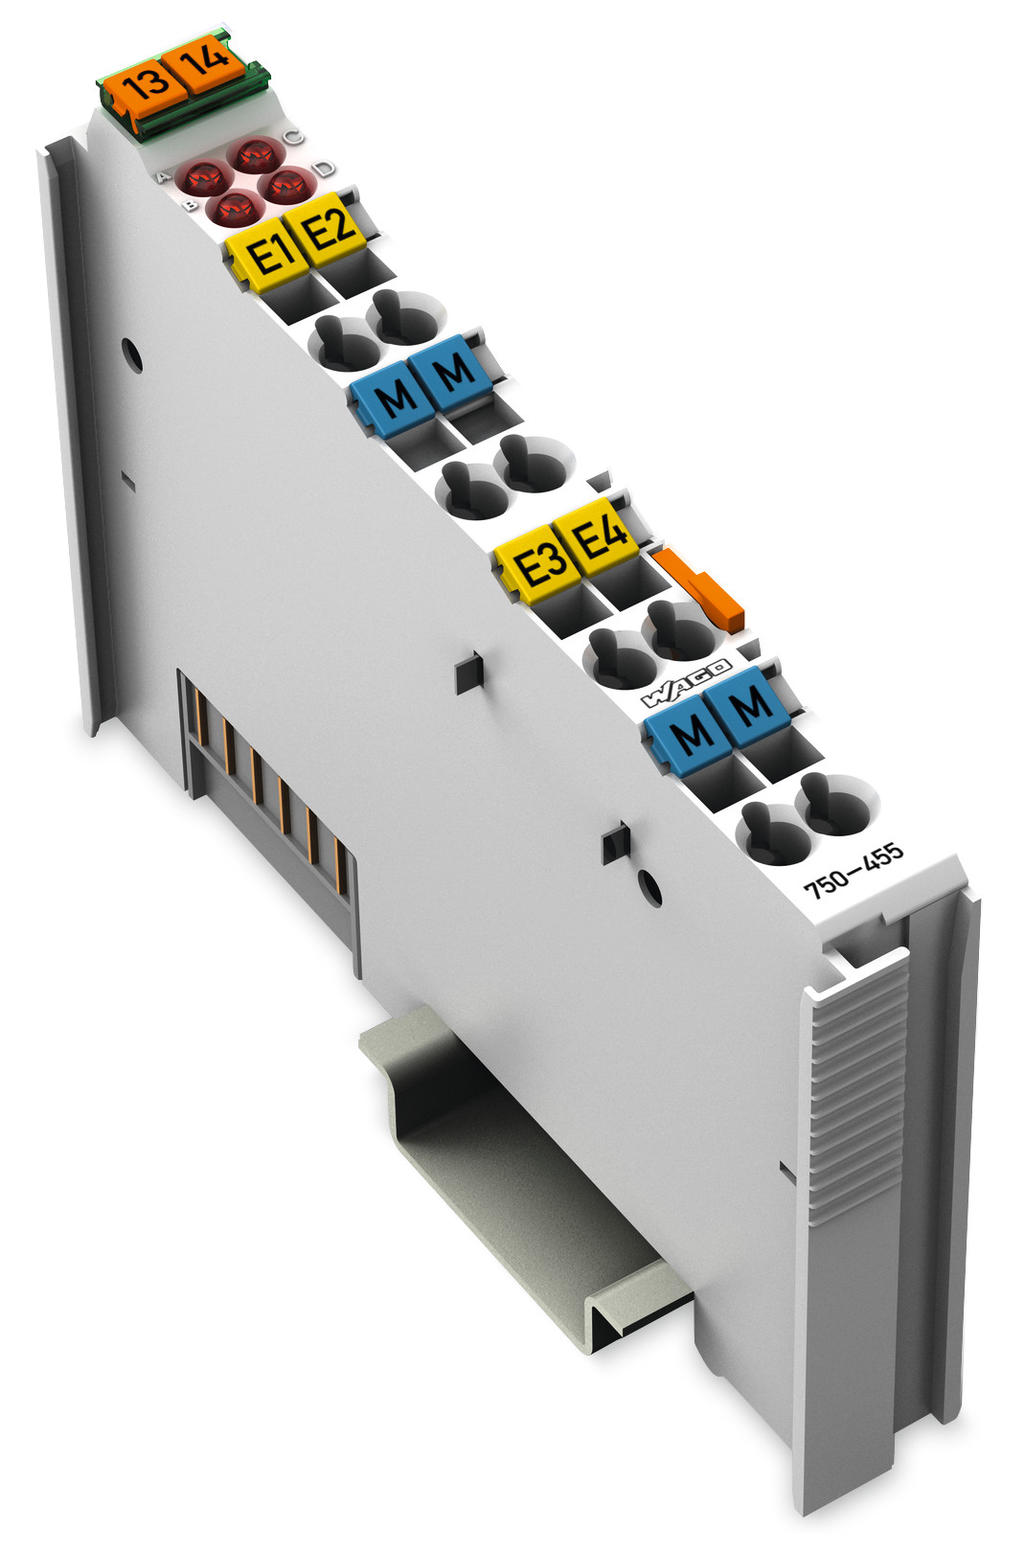 Wago 4 Channel Analog Input 750 455 Control Box Panel Main Power Diagram Plc Sheet Wiring 2 To Conductor Connection Single Ended